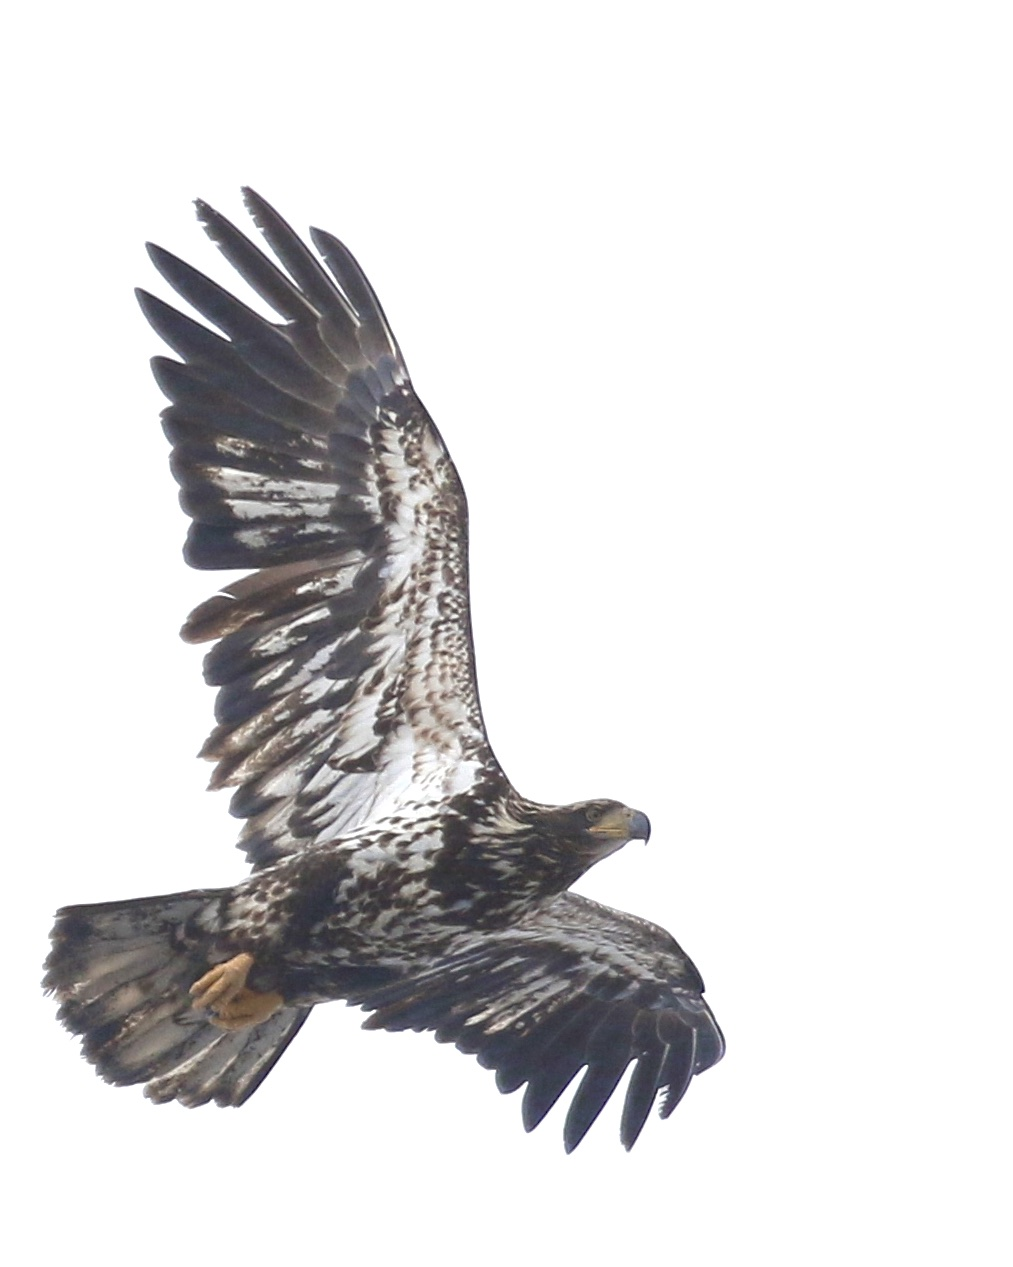 ~An immature Bald Eagle flies over Haven Road at the Bashakill, 3/28/15.~